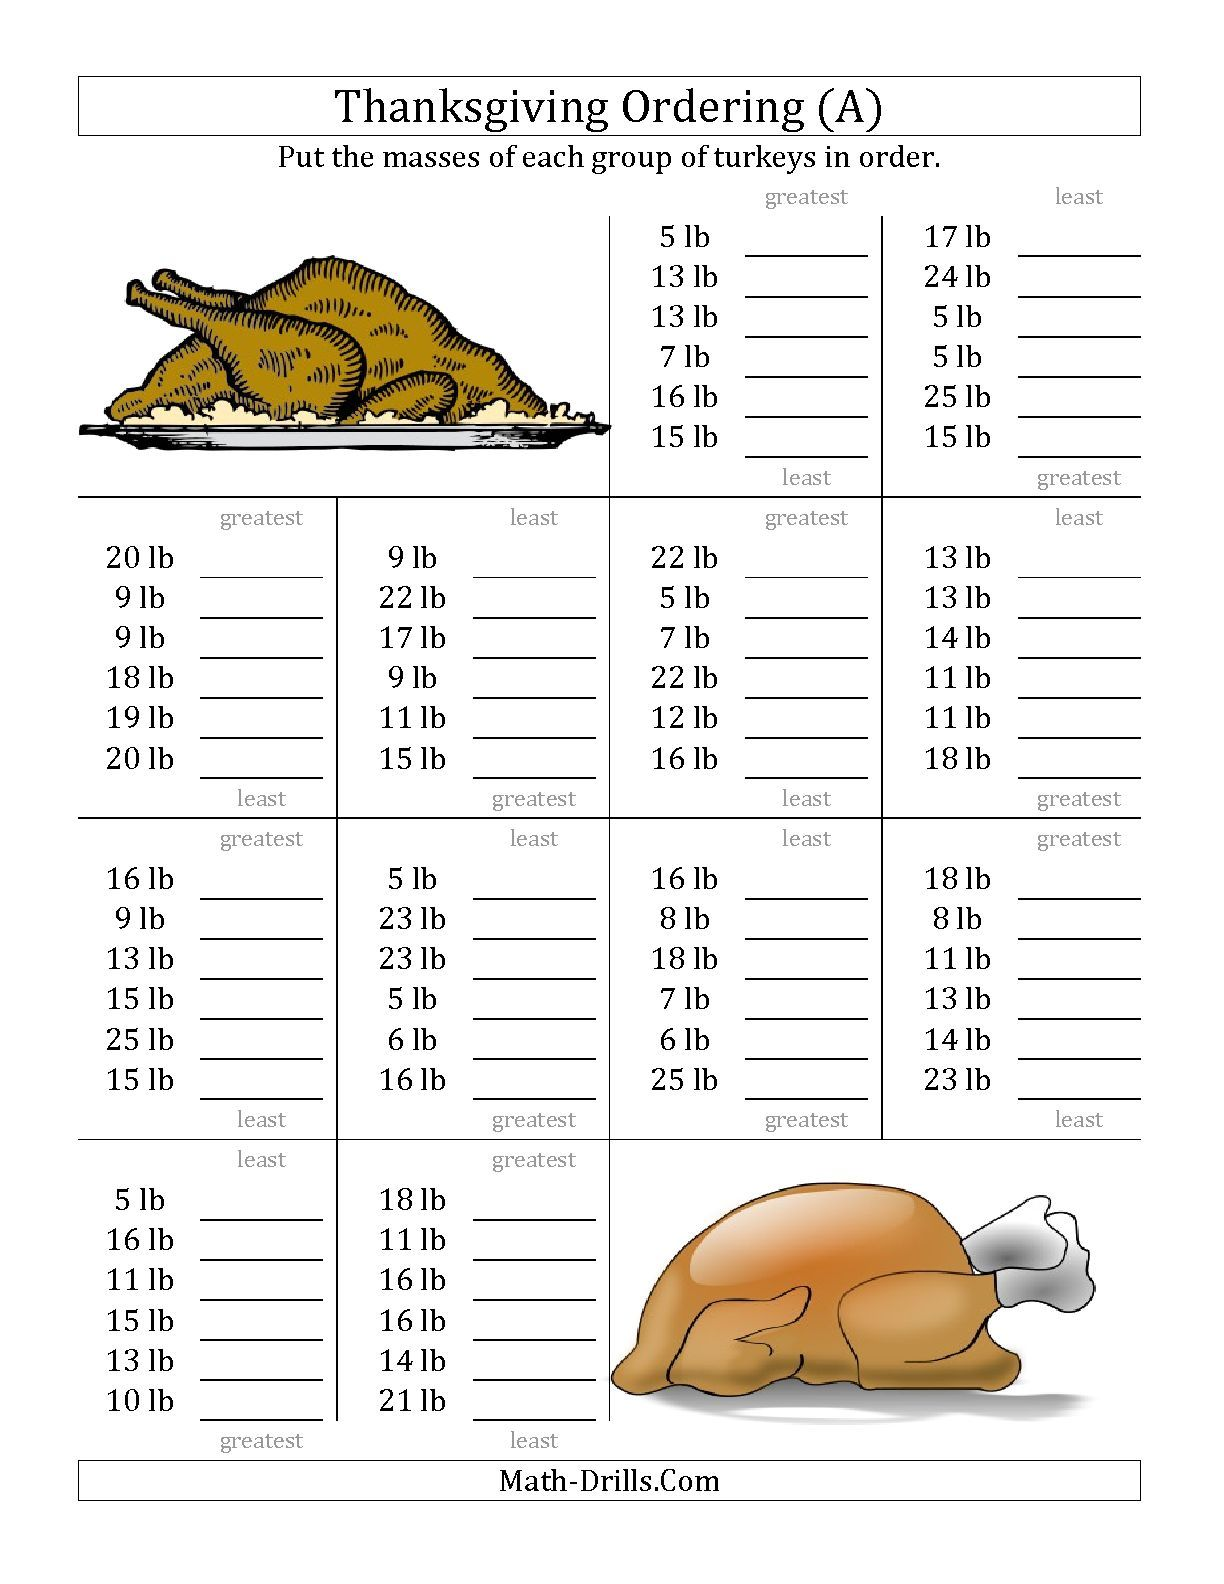 The Ordering Turkey Masses In Pounds A Math Worksheet From The Thanksgiving Math Worksheet